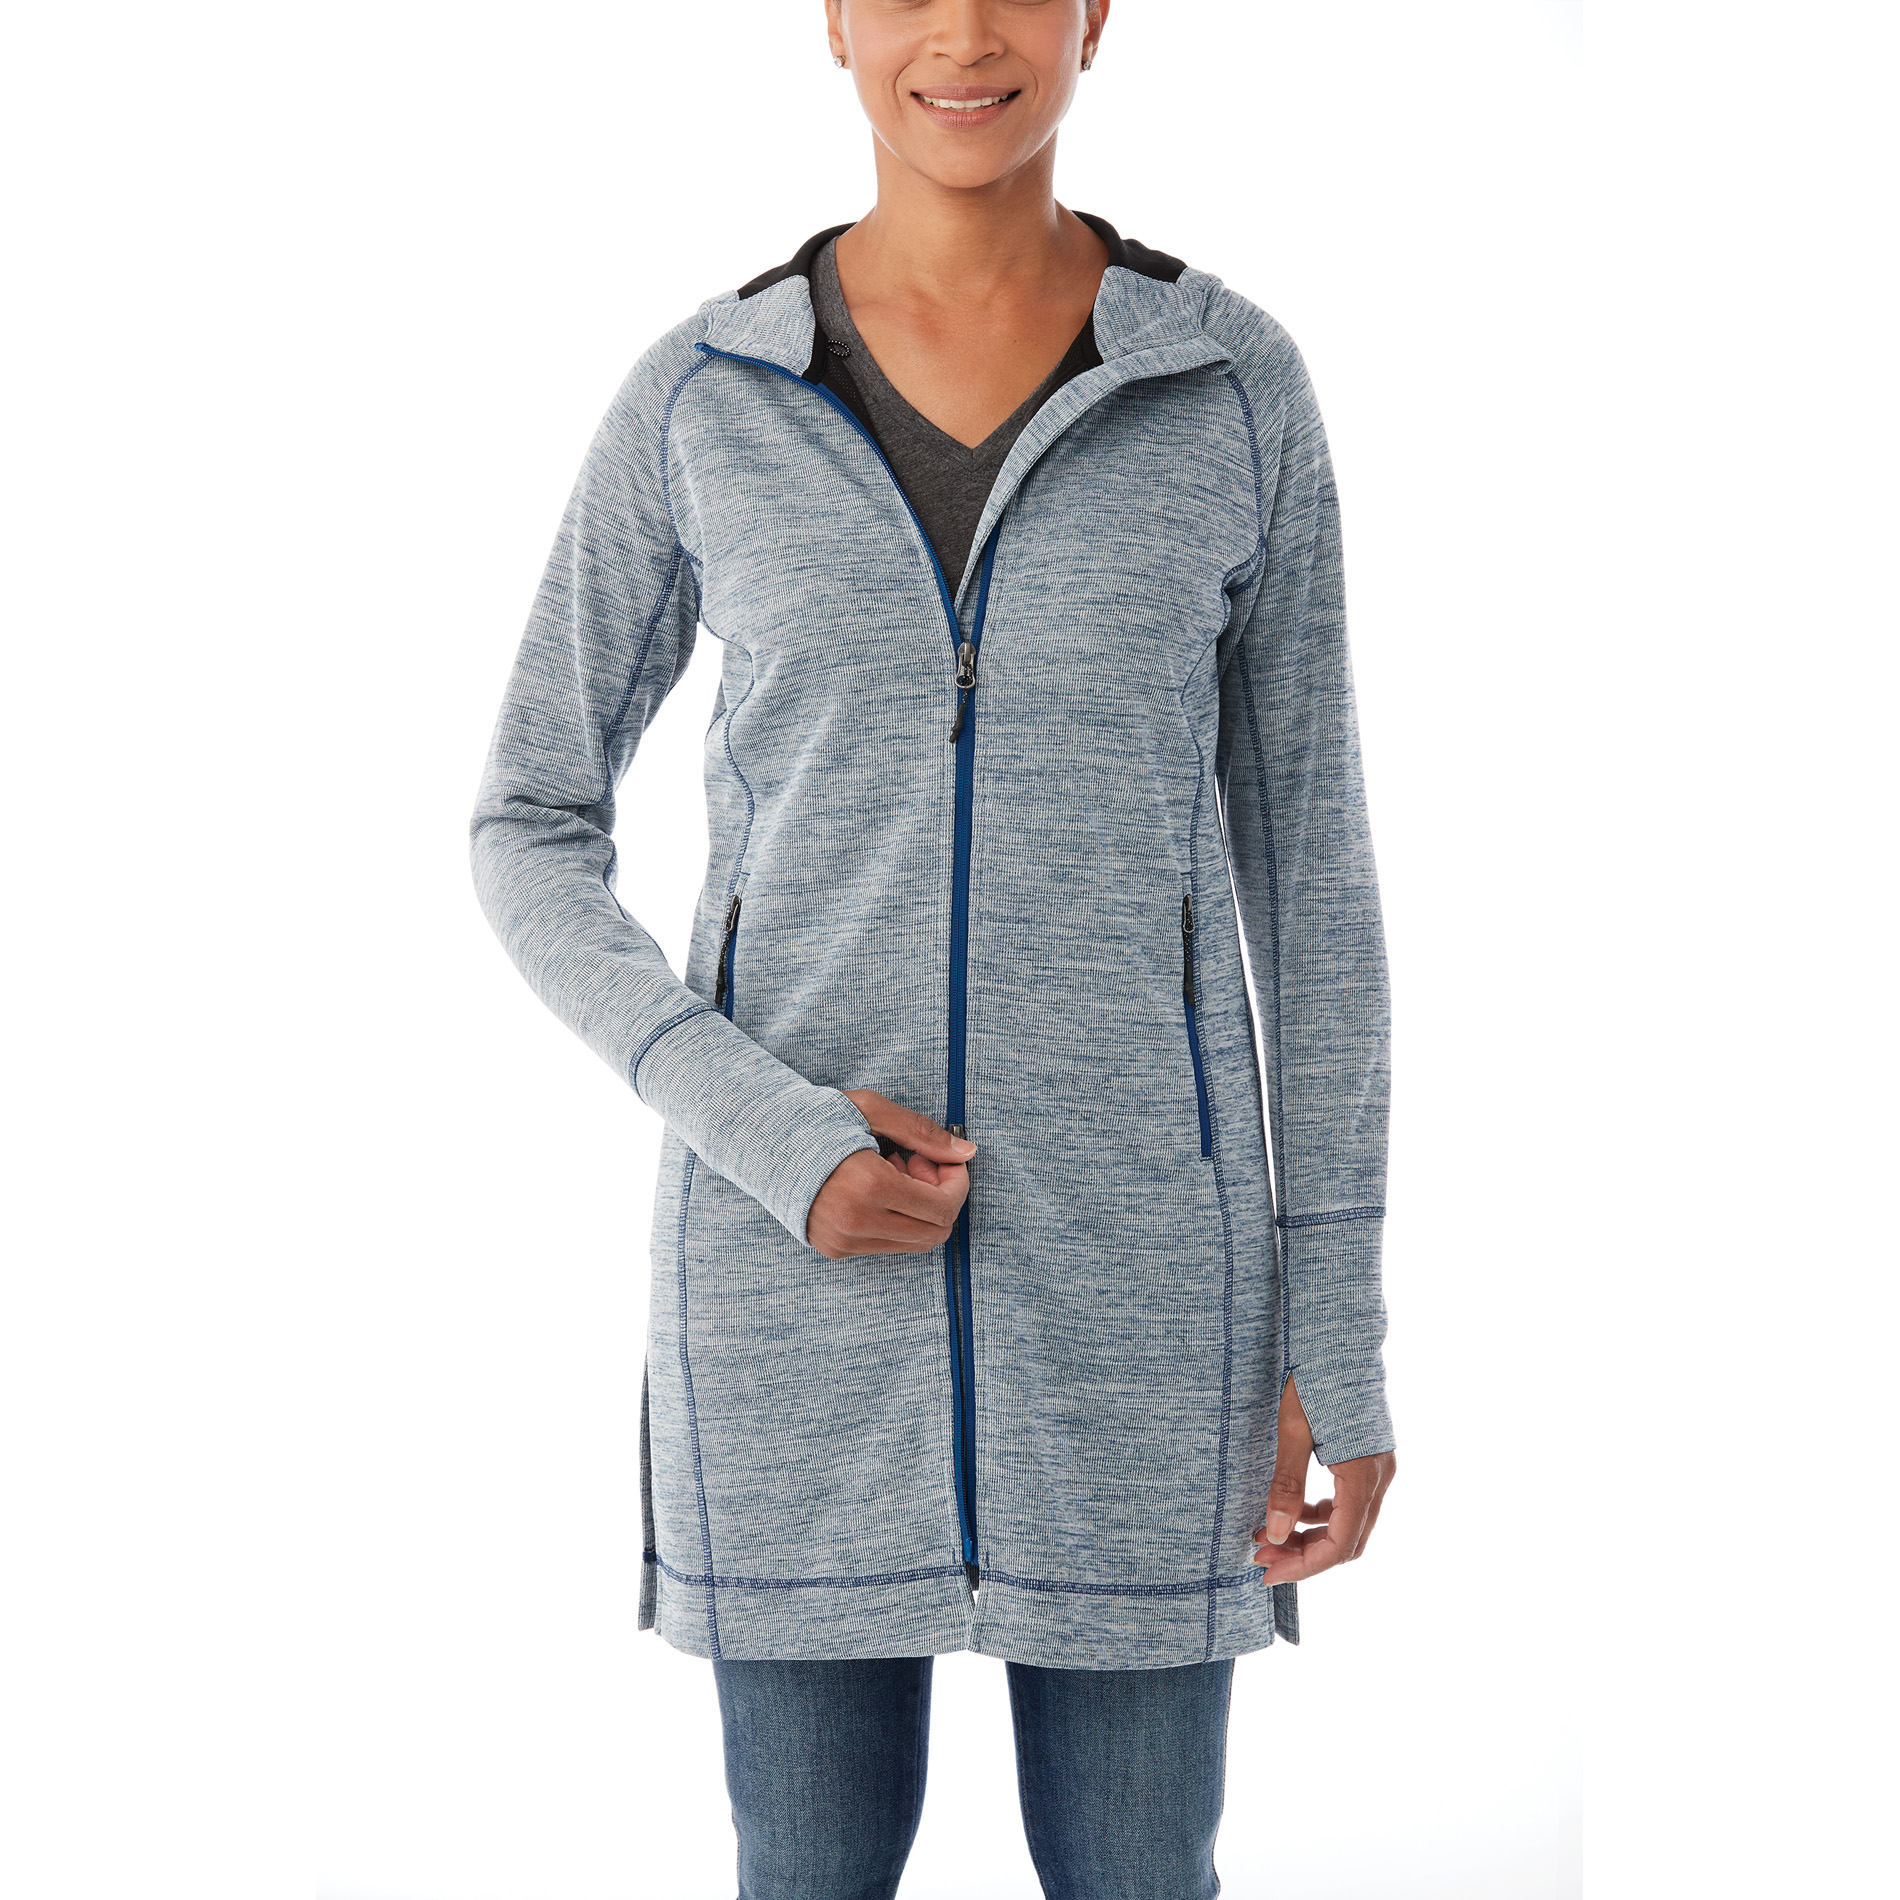 Elevate TM98210 - Women's ODELL Knit Zip Hoody